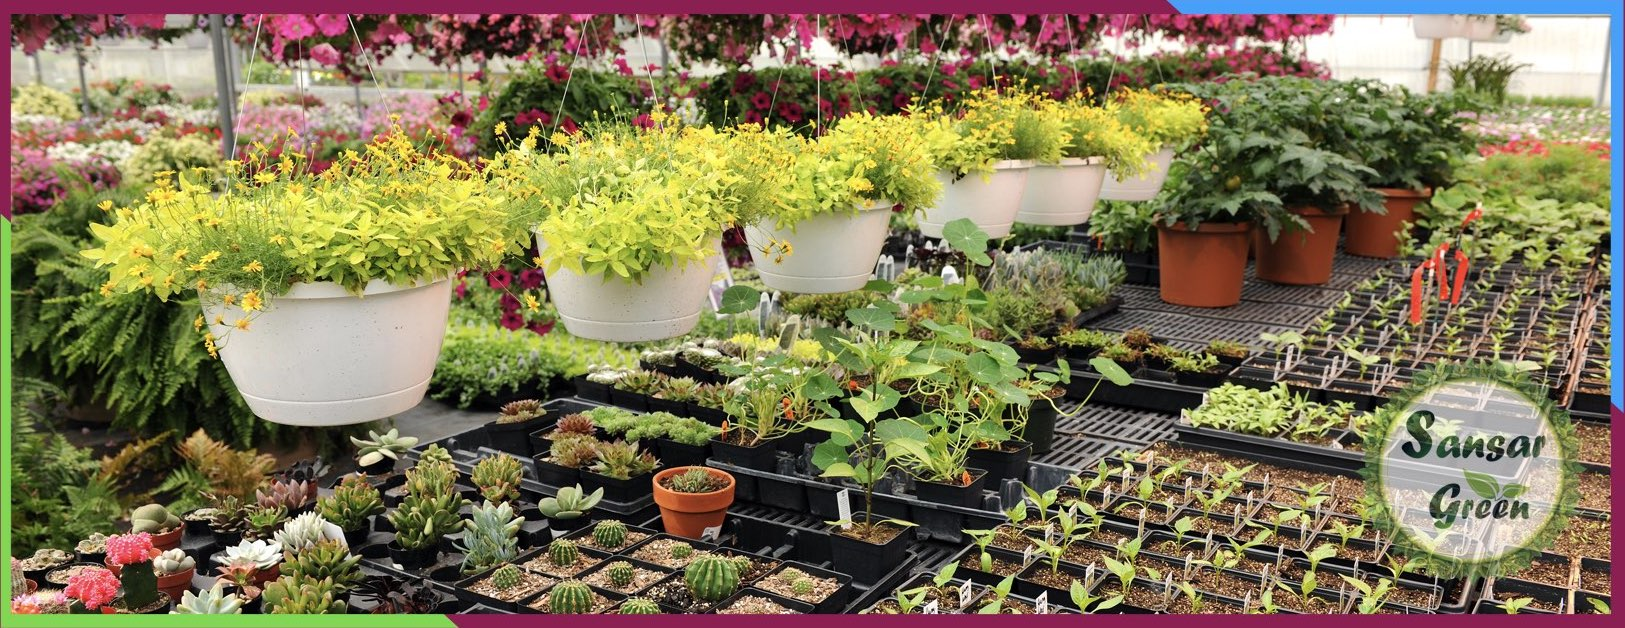 Plant Sale in India - Sansar Green